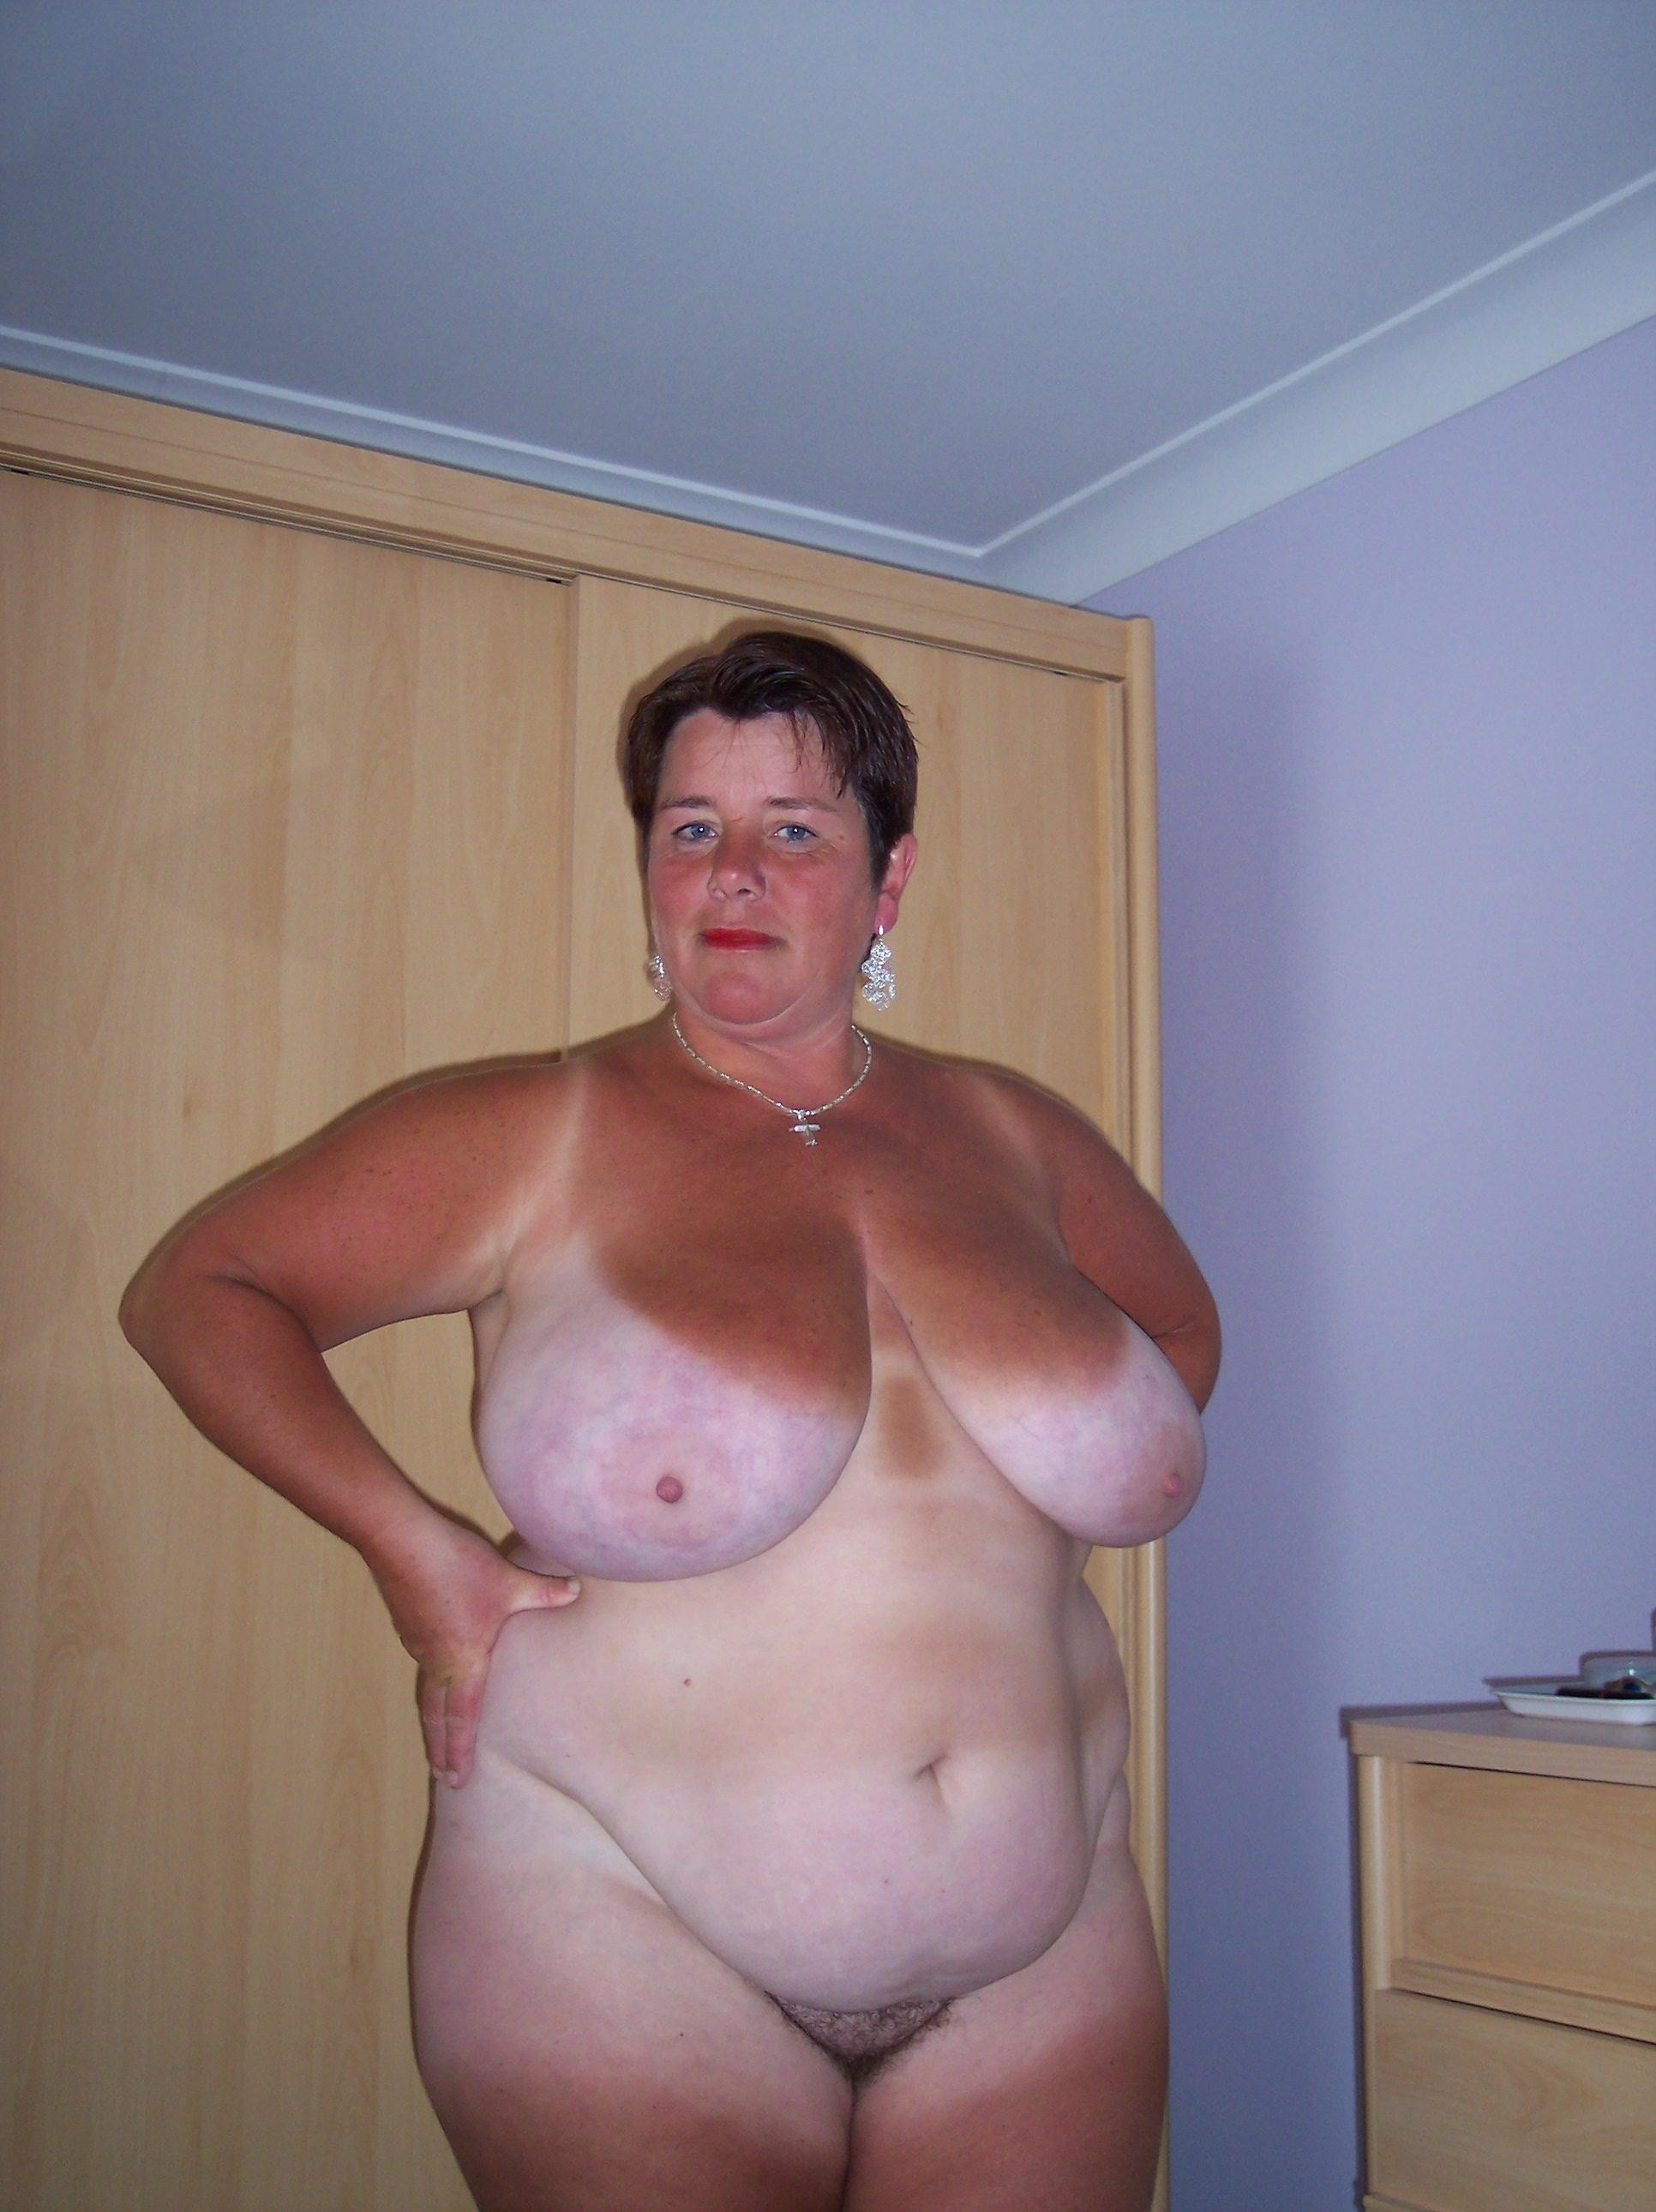 Chubby women free pictures wife. Happy